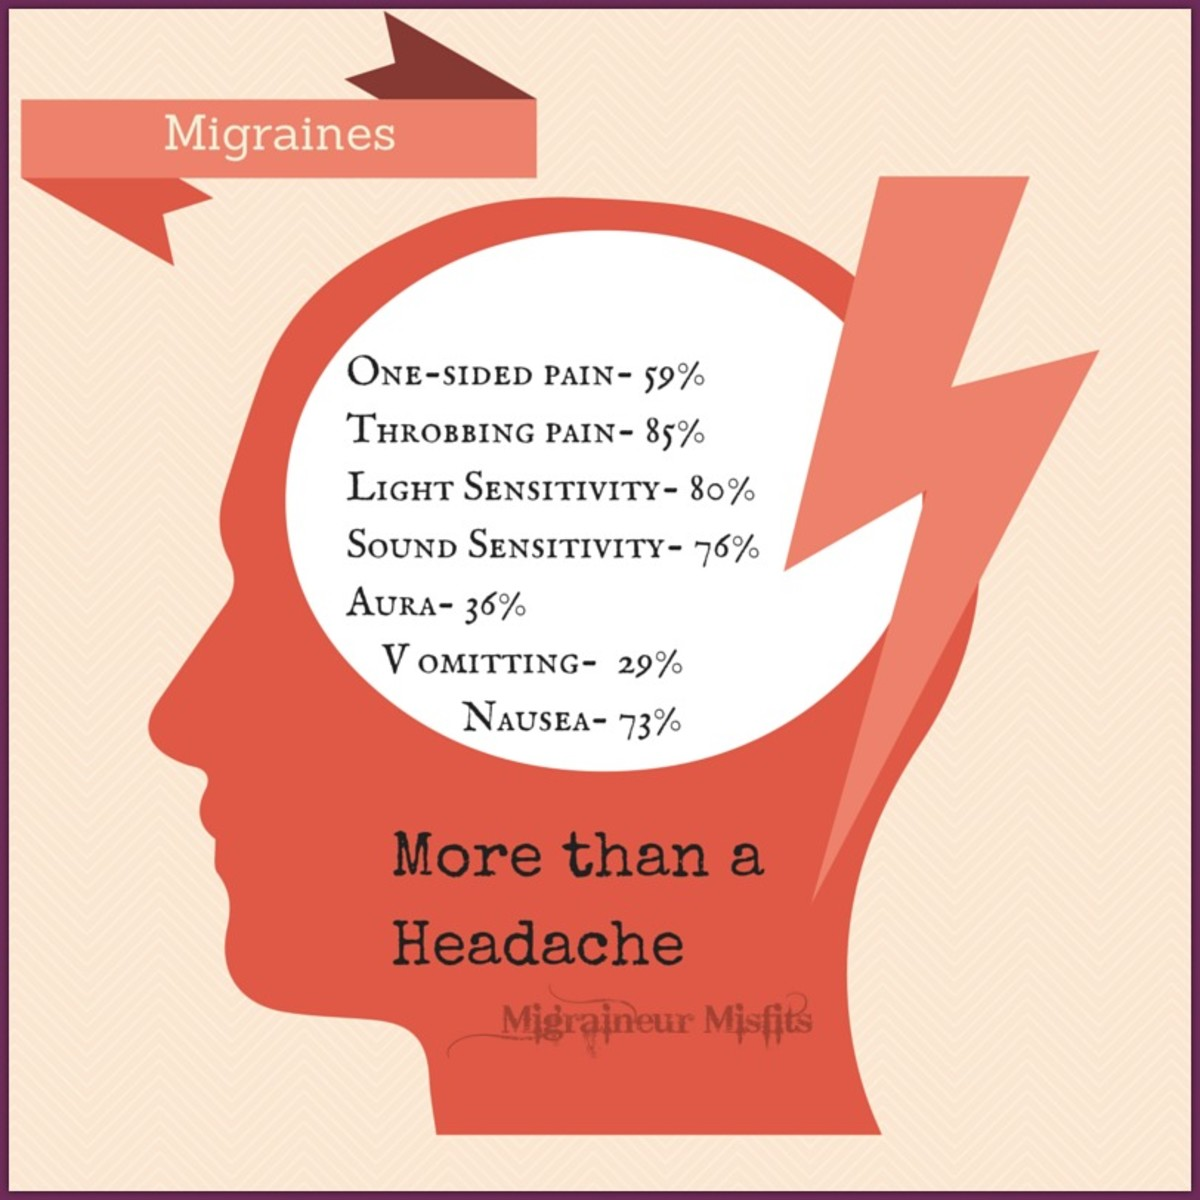 Migraines: A General Overview